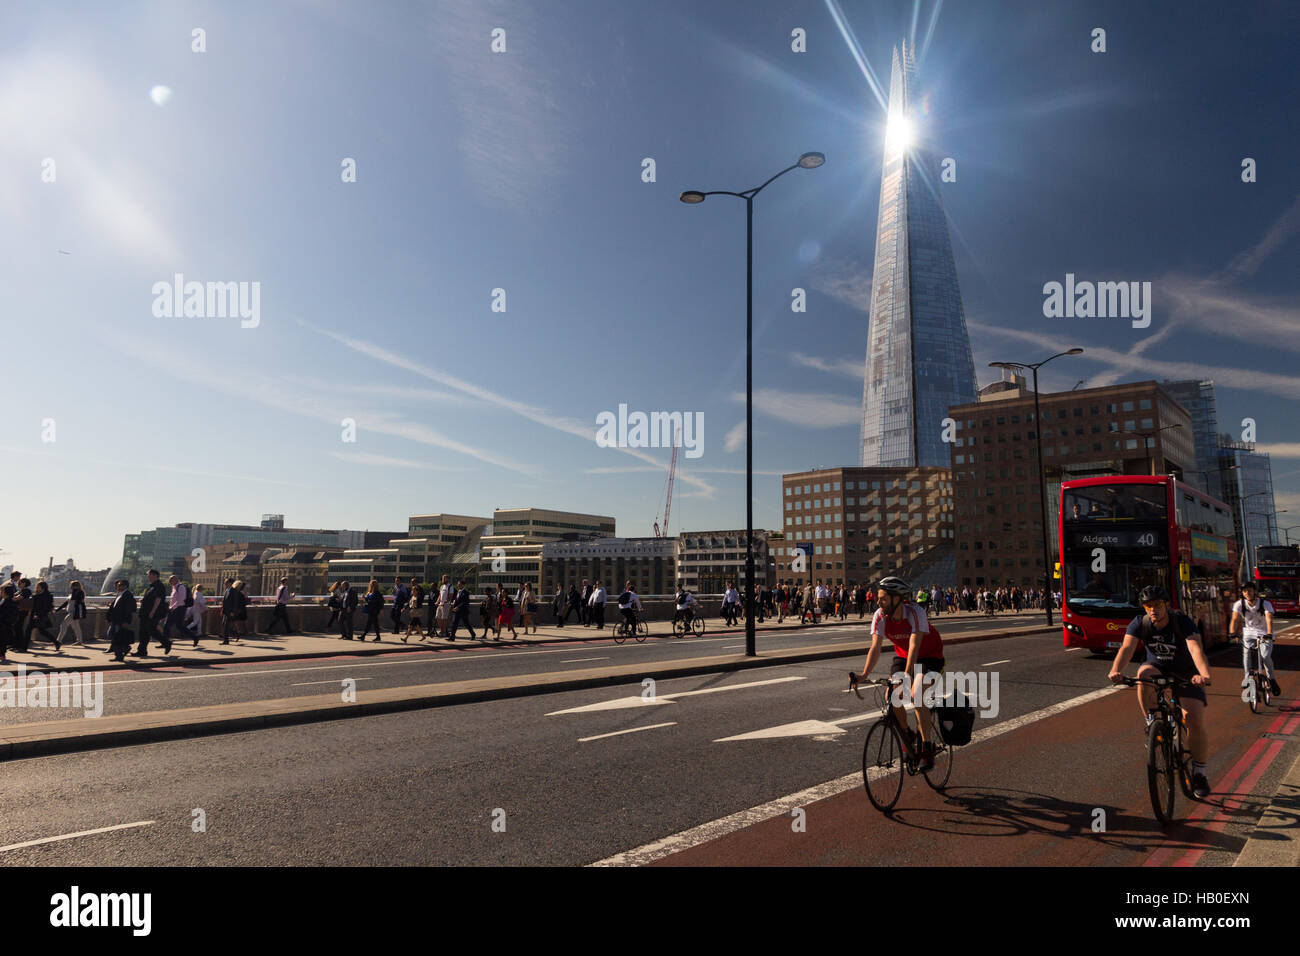 London Bridge traffic during the morning commute, with the sunlight gleaming off the Shard building in the background. - Stock Image